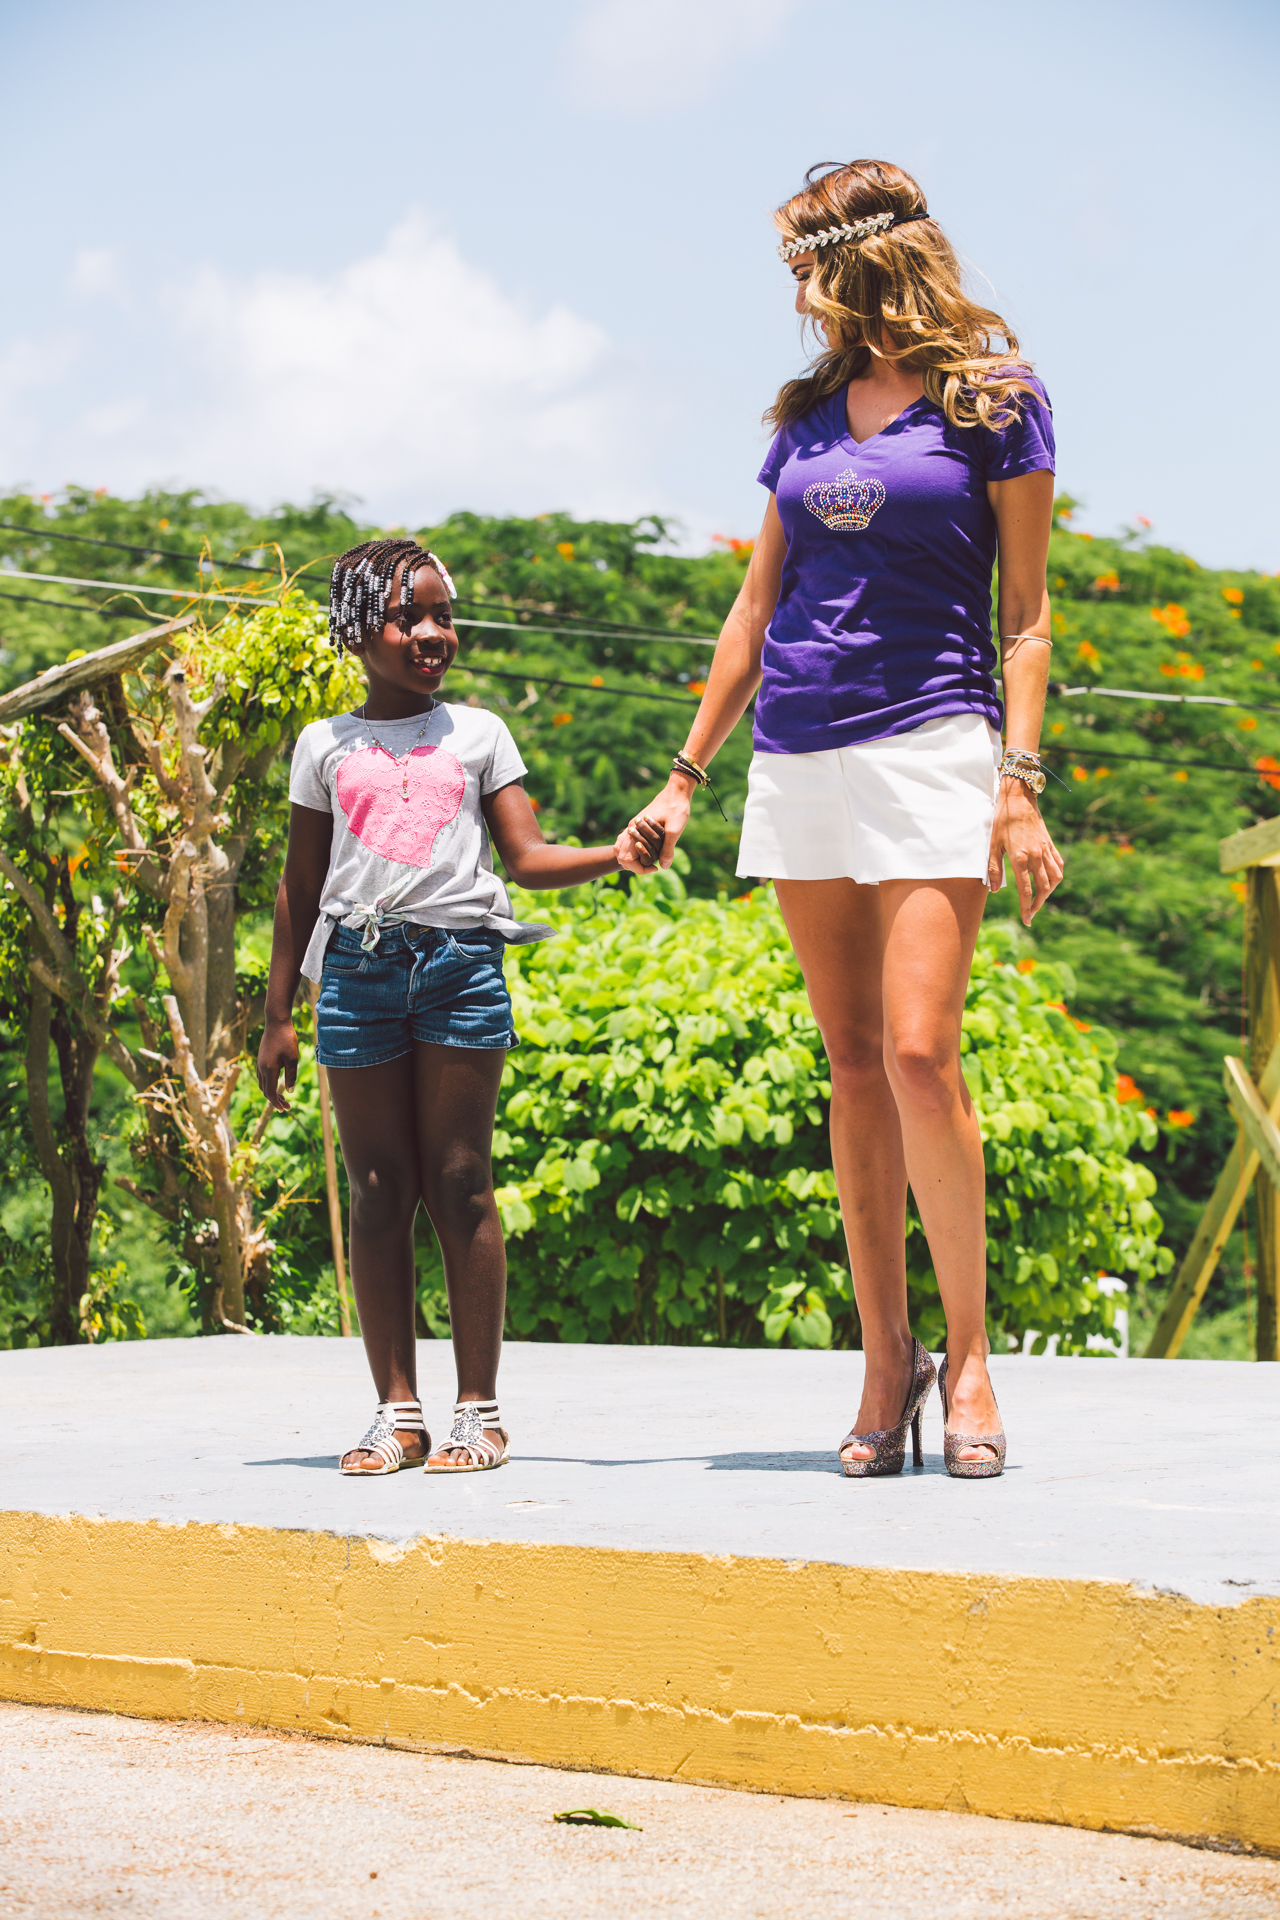 pageant of hope bahamas 2016-152.jpg